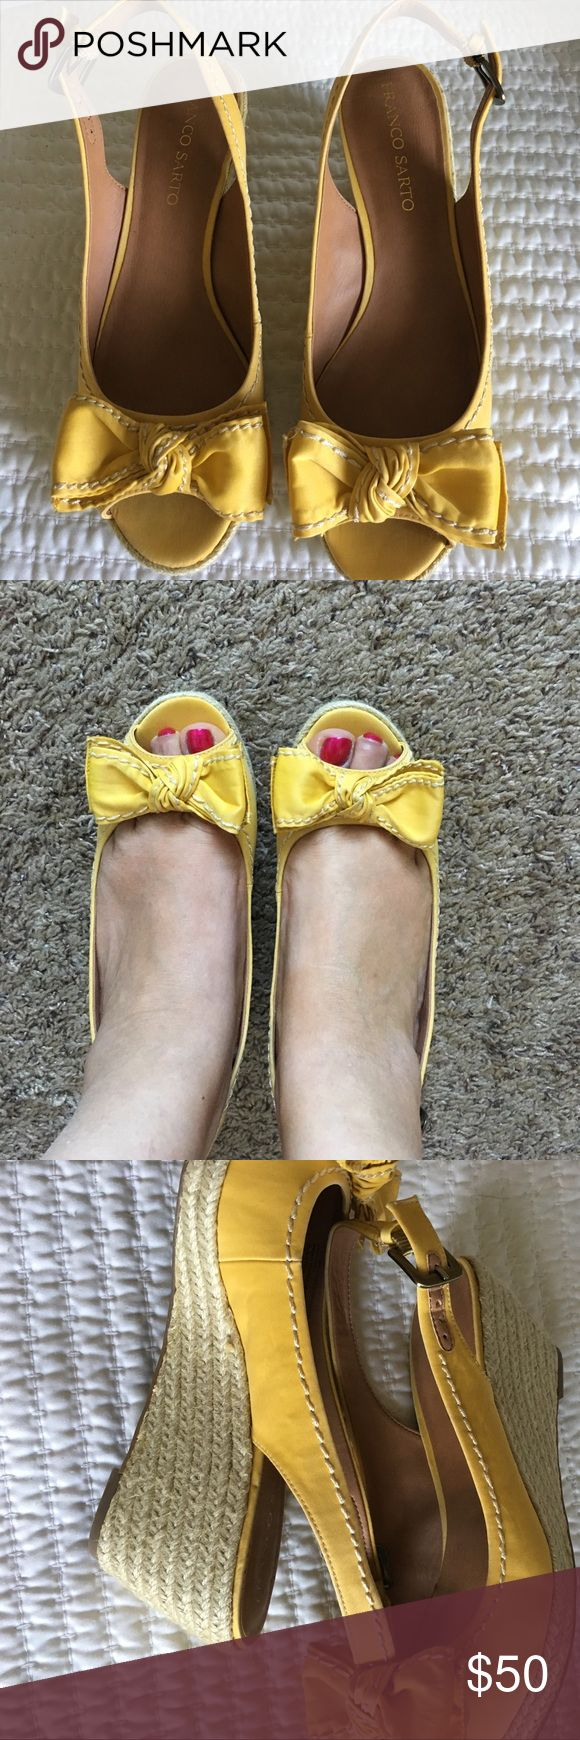 NWOT Mustard Yellow Espadrilles Never worn Bow Front Espadrilles - Mustard Yellow. Franco Sarto Shoes Espadrilles